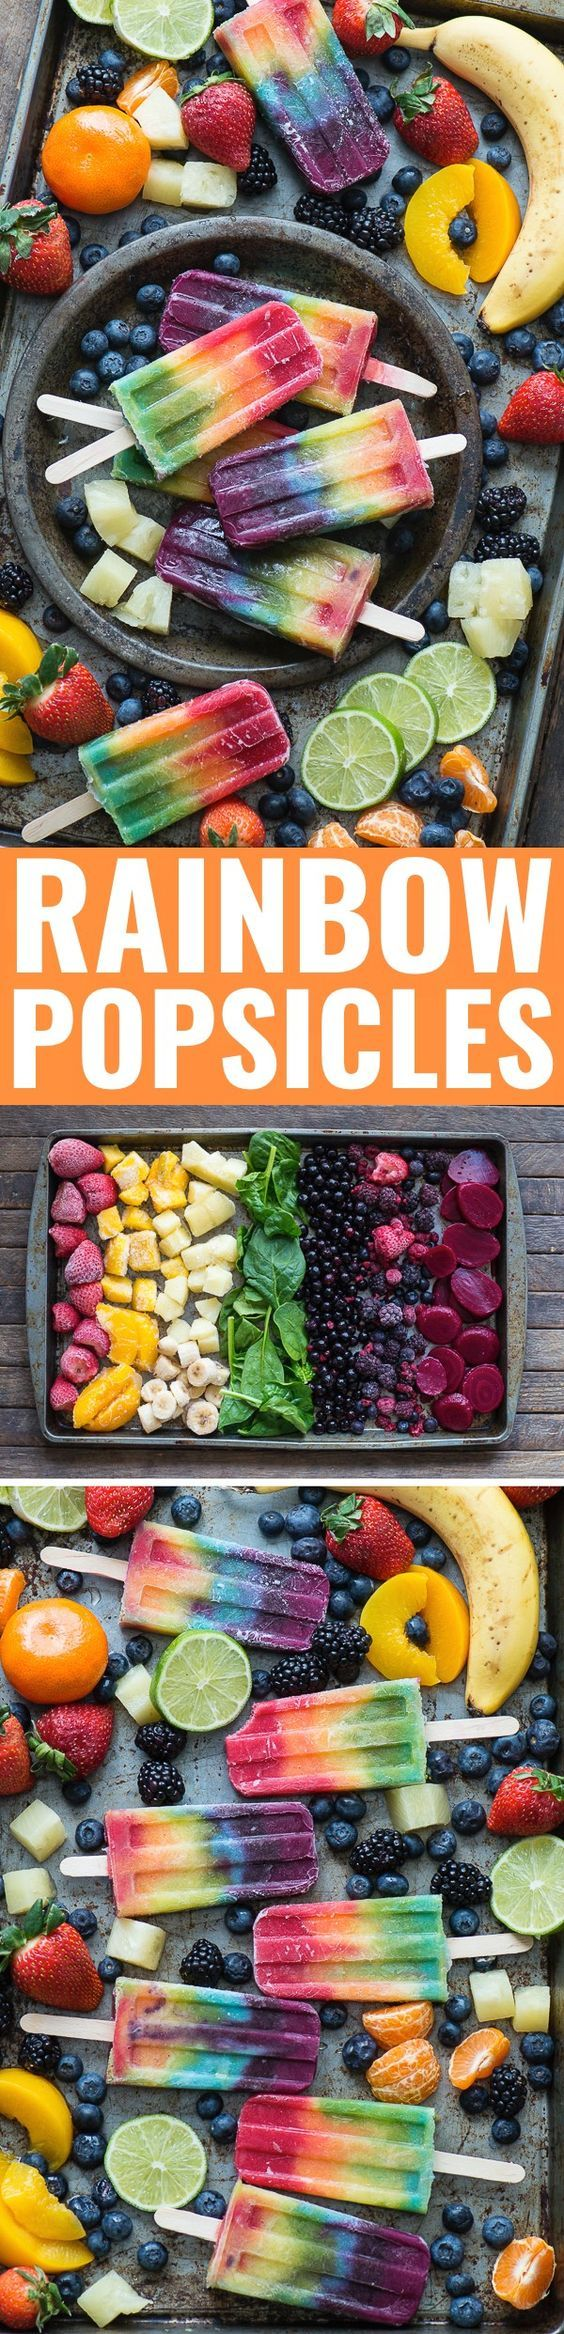 Rainbow Popsicles - Make your own homemade rainbow popsicles with lots of fresh fruit!